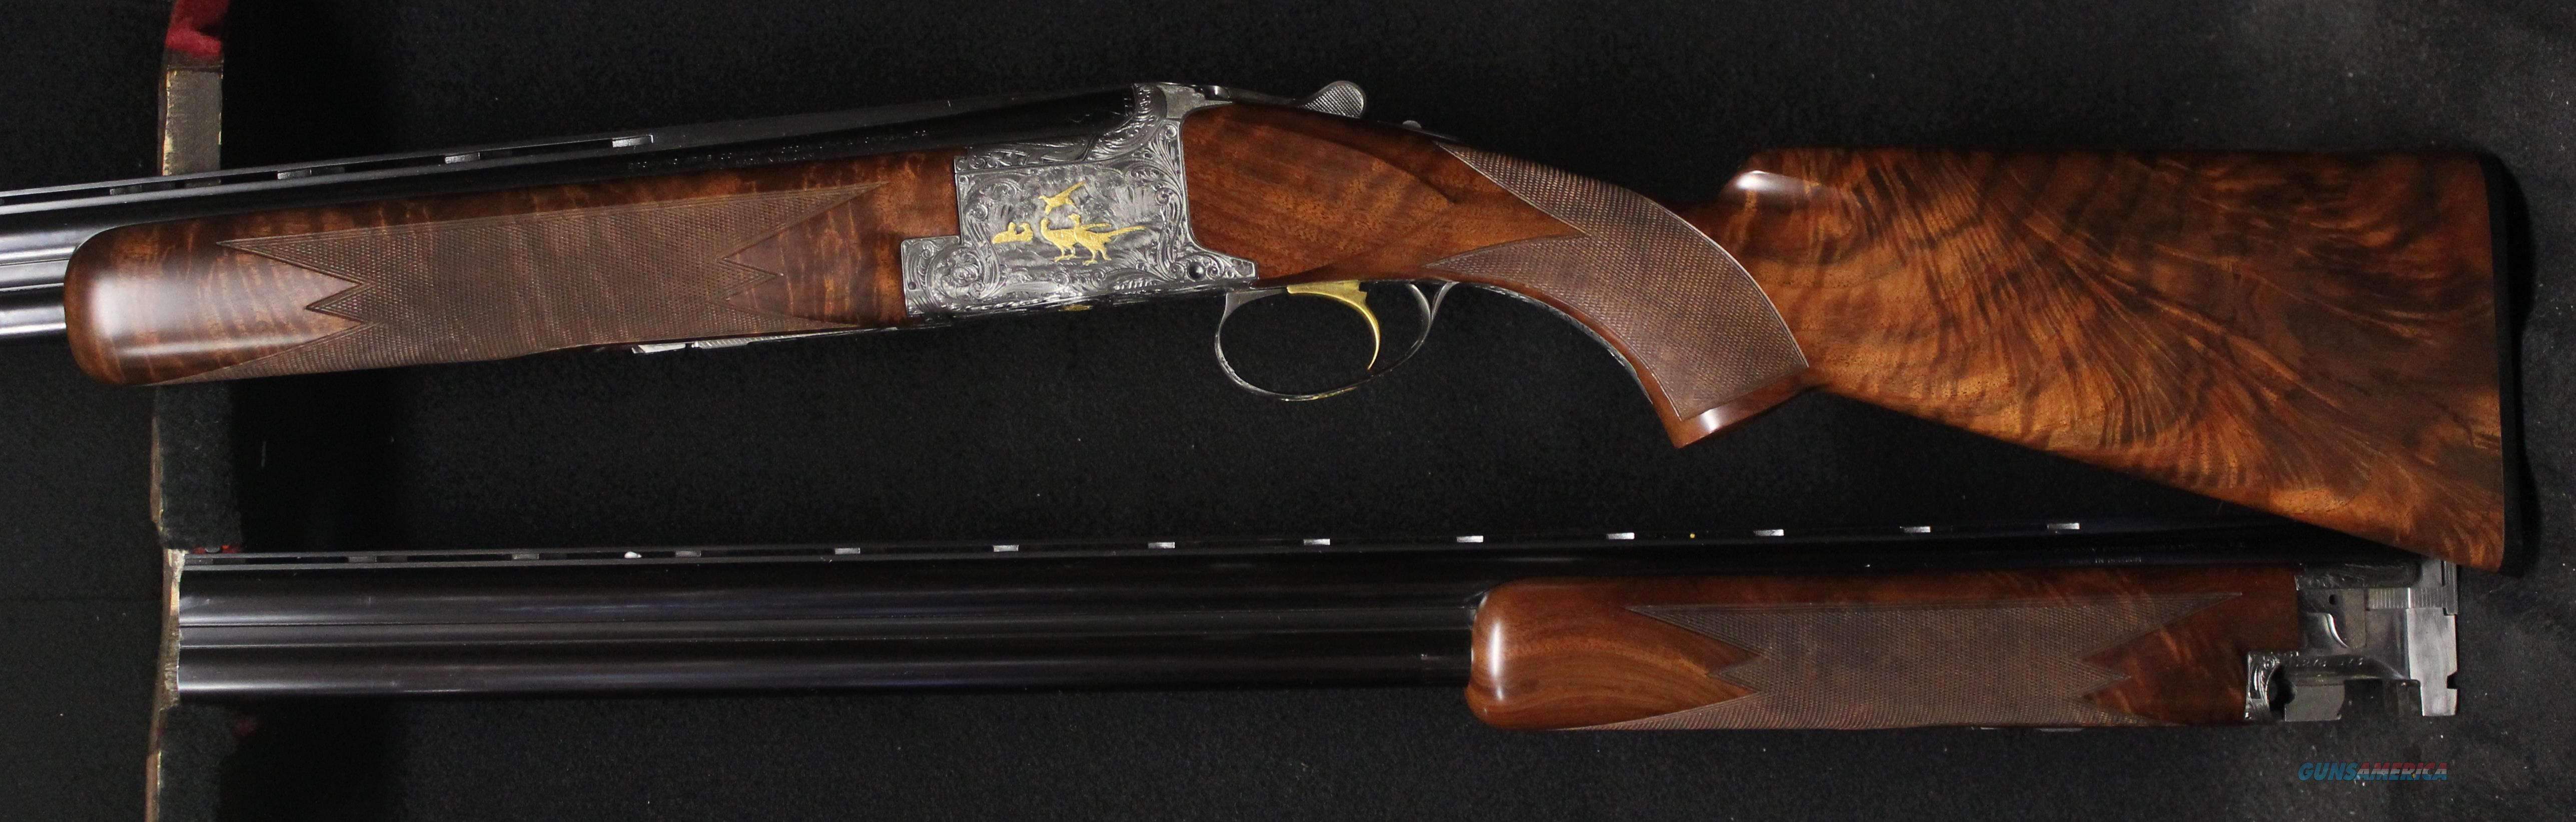 Browning Superposed Diana Grade 12 & 20 Ga combo set  Guns > Shotguns > Browning Shotguns > Over Unders > Belgian Manufacture